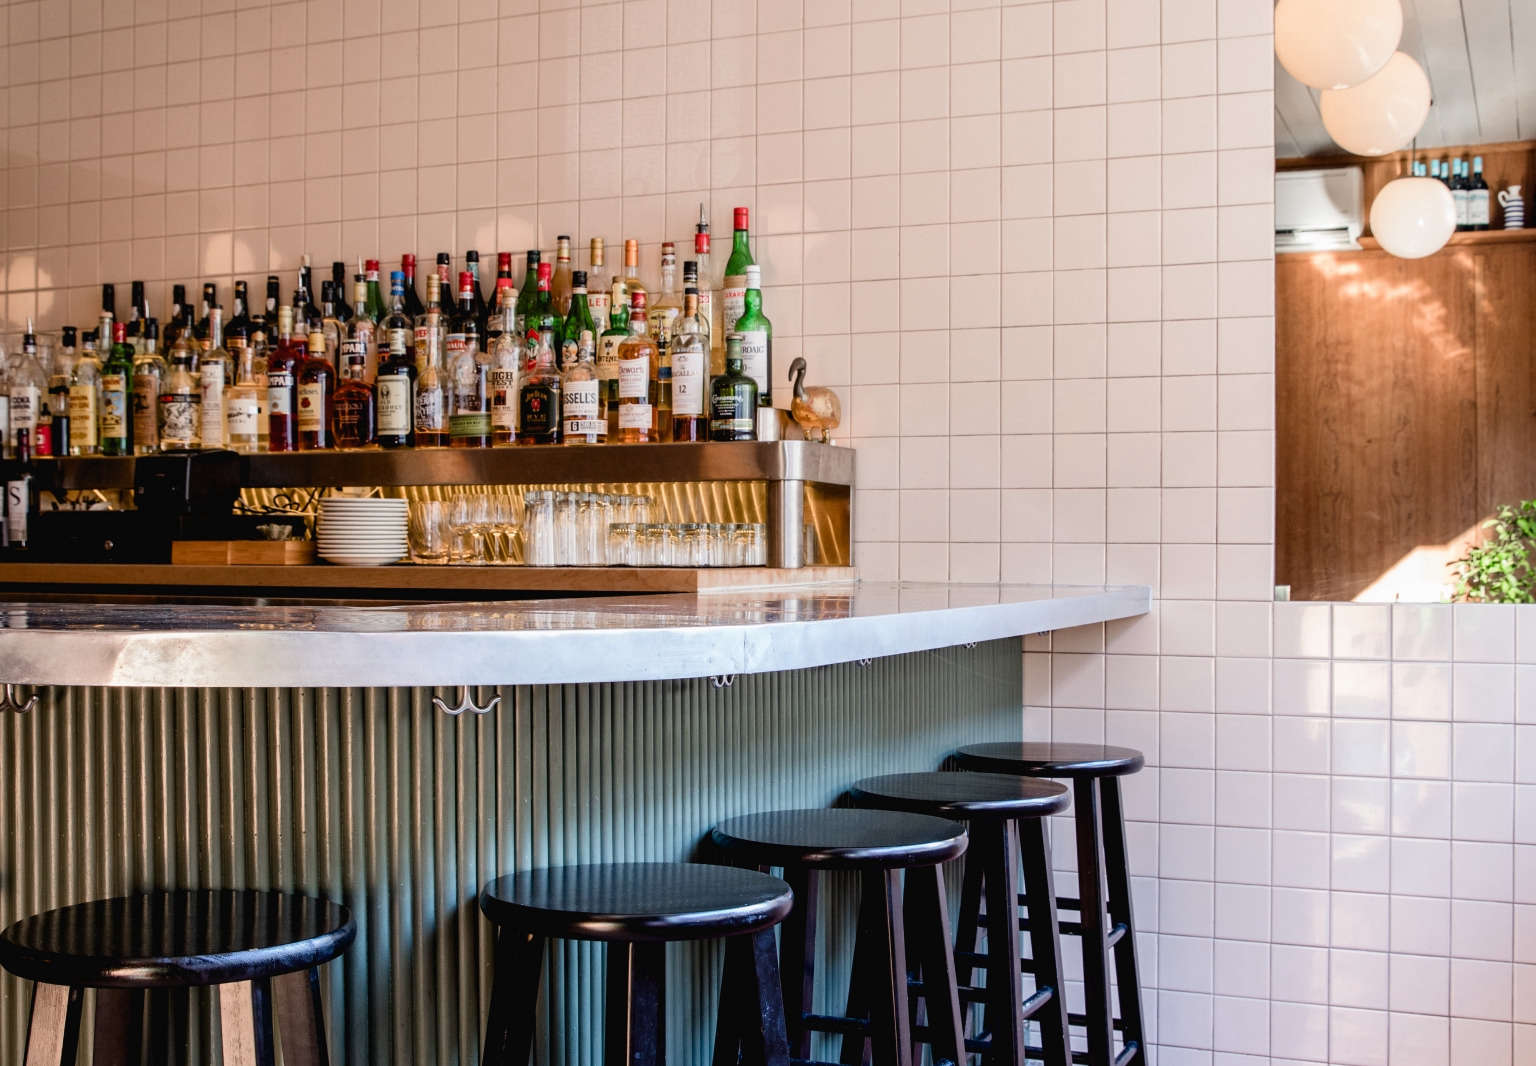 A Few Weeks Back We Dropped In On Cervou0027s, A Tiny Portuguese Wine Bar And  Restaurant On The Lower East Side Of Manhattan. Online, Weu0027d Seen Photos Of  ...